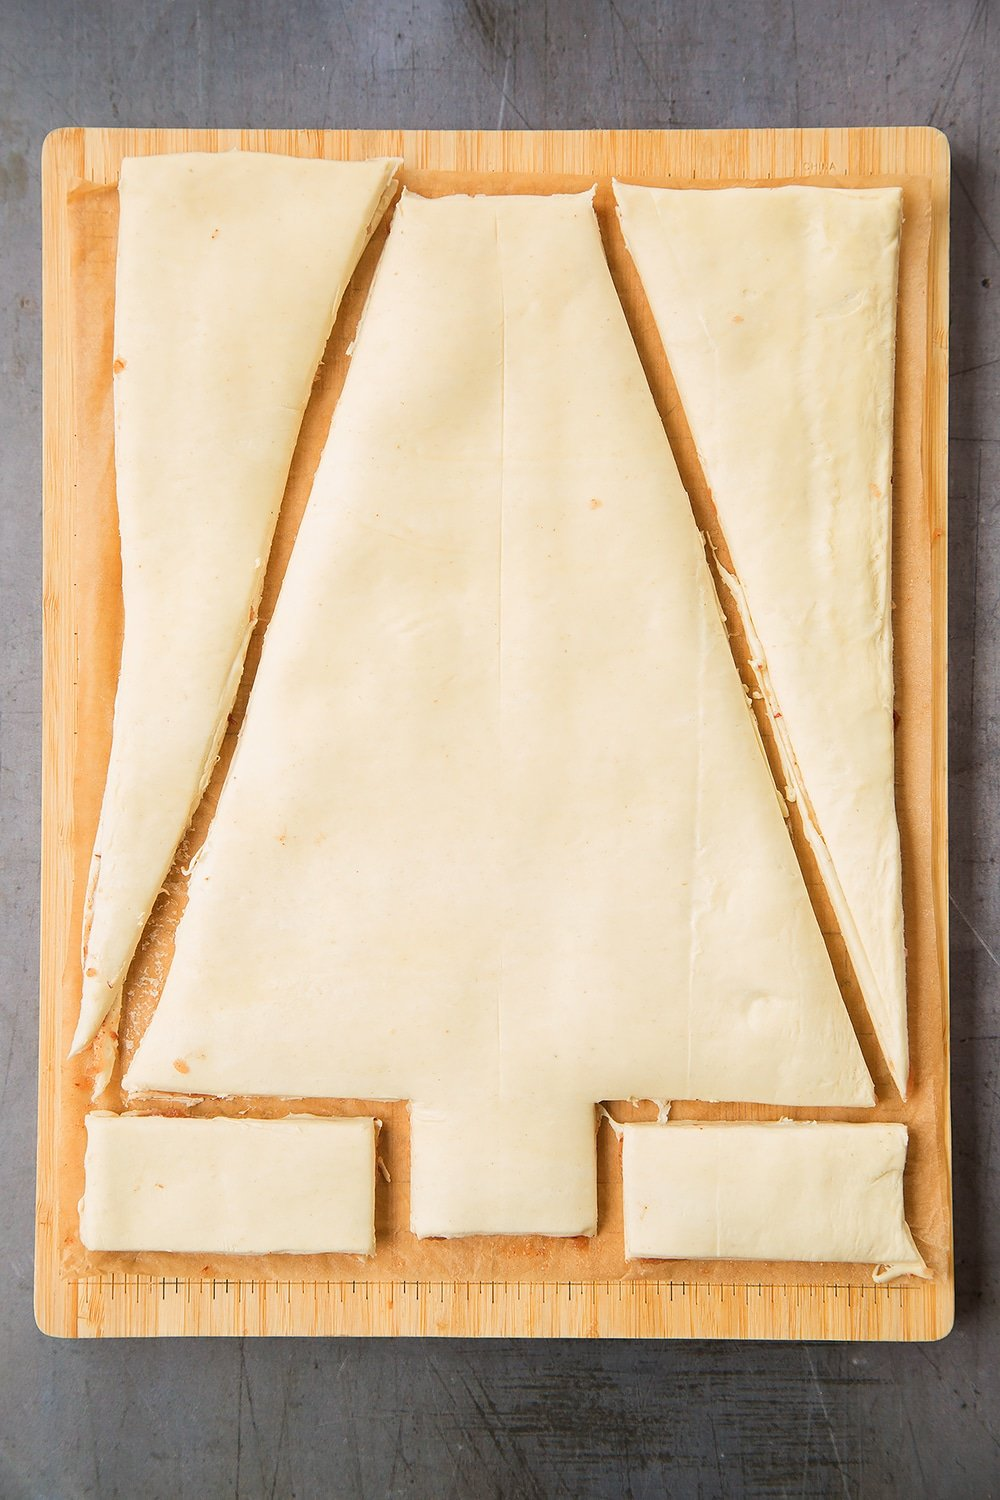 Cut a Christmas tree shape from your puff pastry